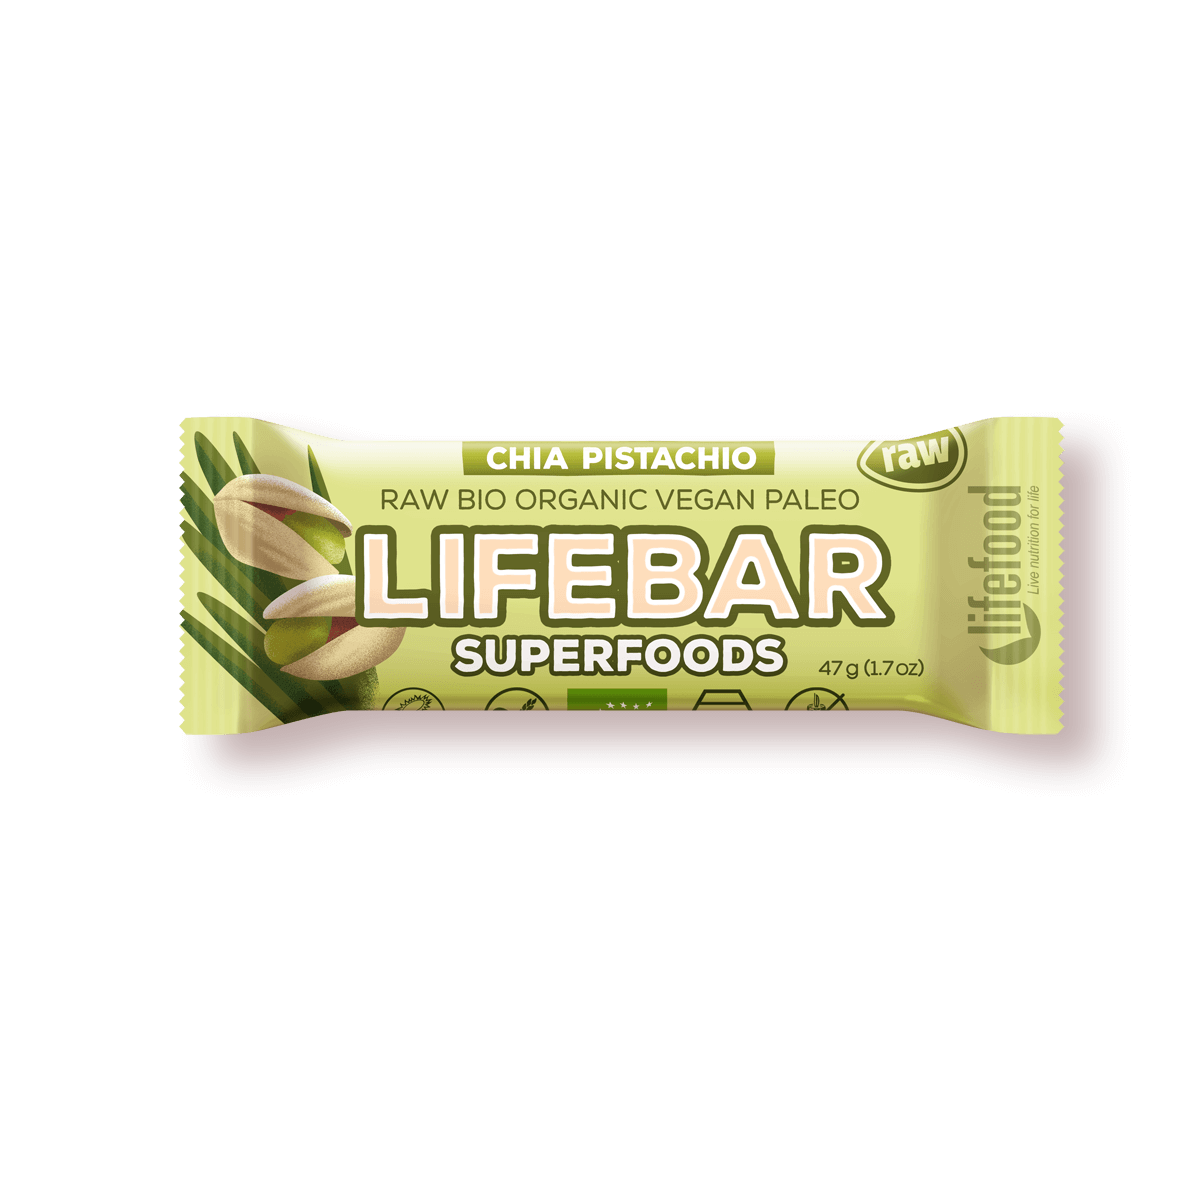 Lifebar Superfood Chia-Pistachio, 47 g Image